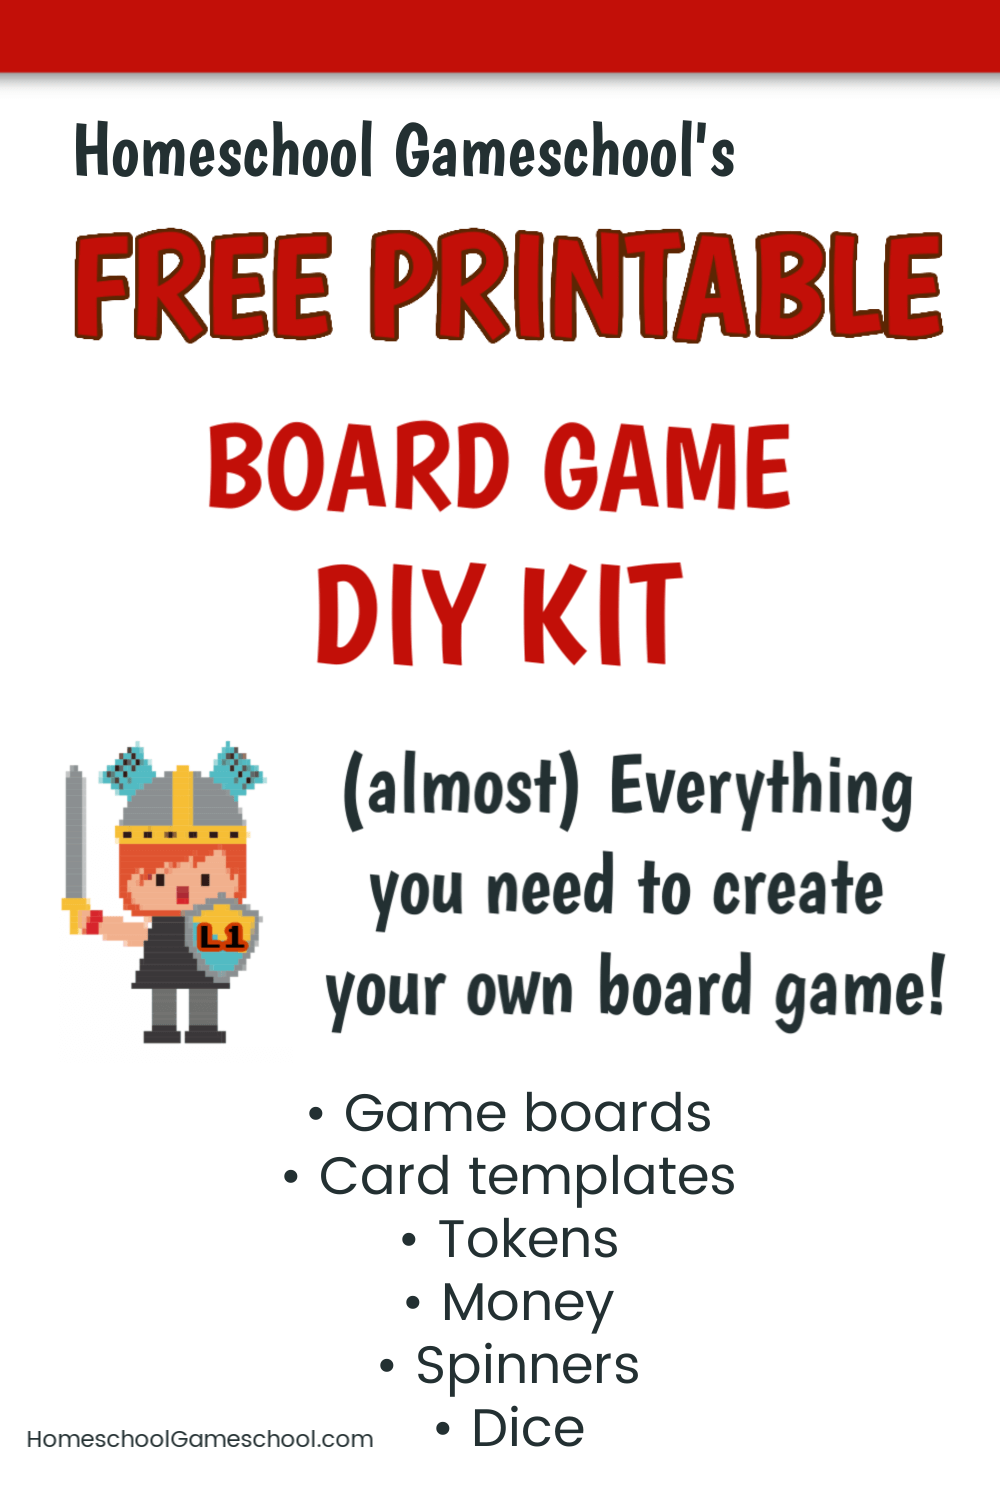 Free Printable Board Game DIY kit for making your own board games!